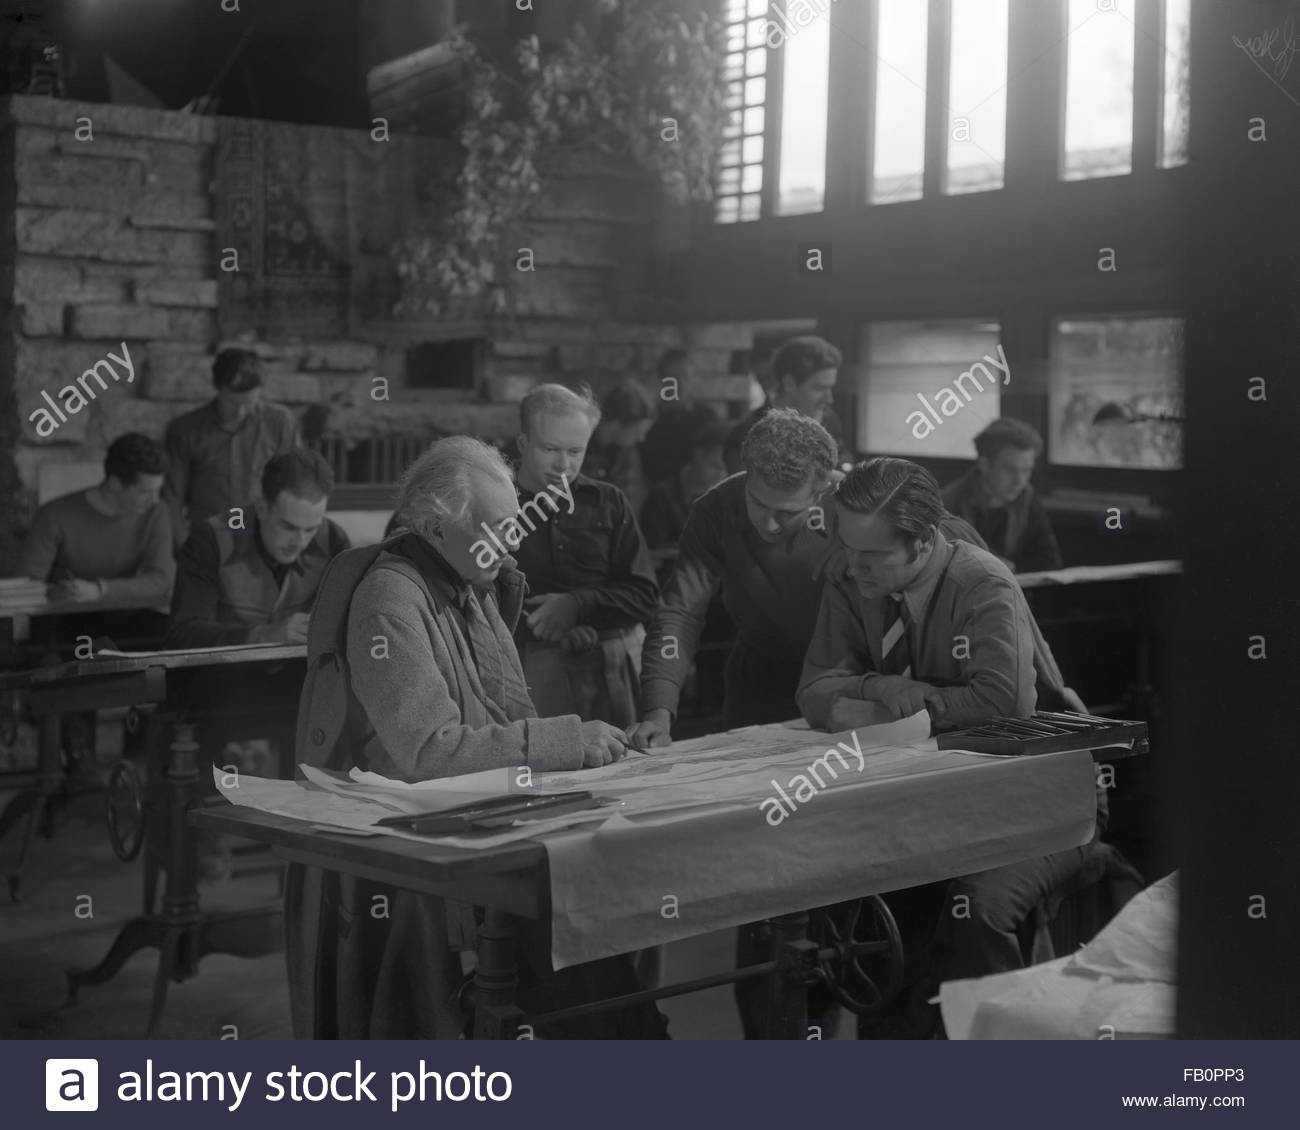 Portraits of Frank Lloyd Wright and others at Taliesin East [graphic], 1937 Dec. Frank Lloyd Wright at a drafting - Stock Image